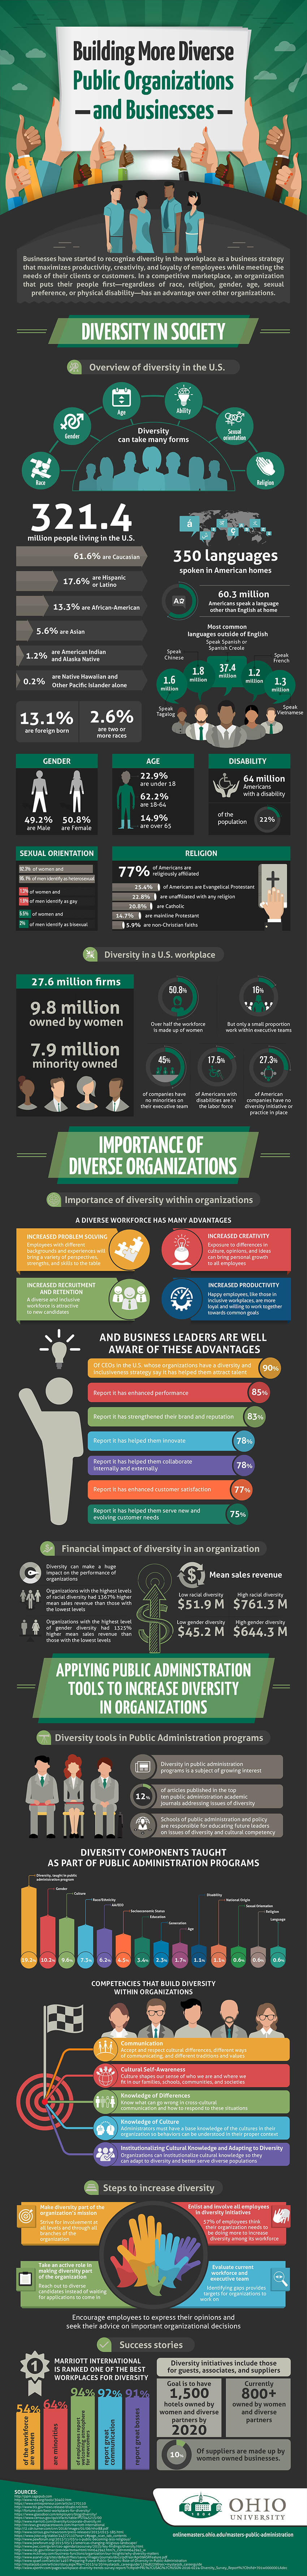 Public Administration: Building More Diverse Public Organizations and Businesses infographic